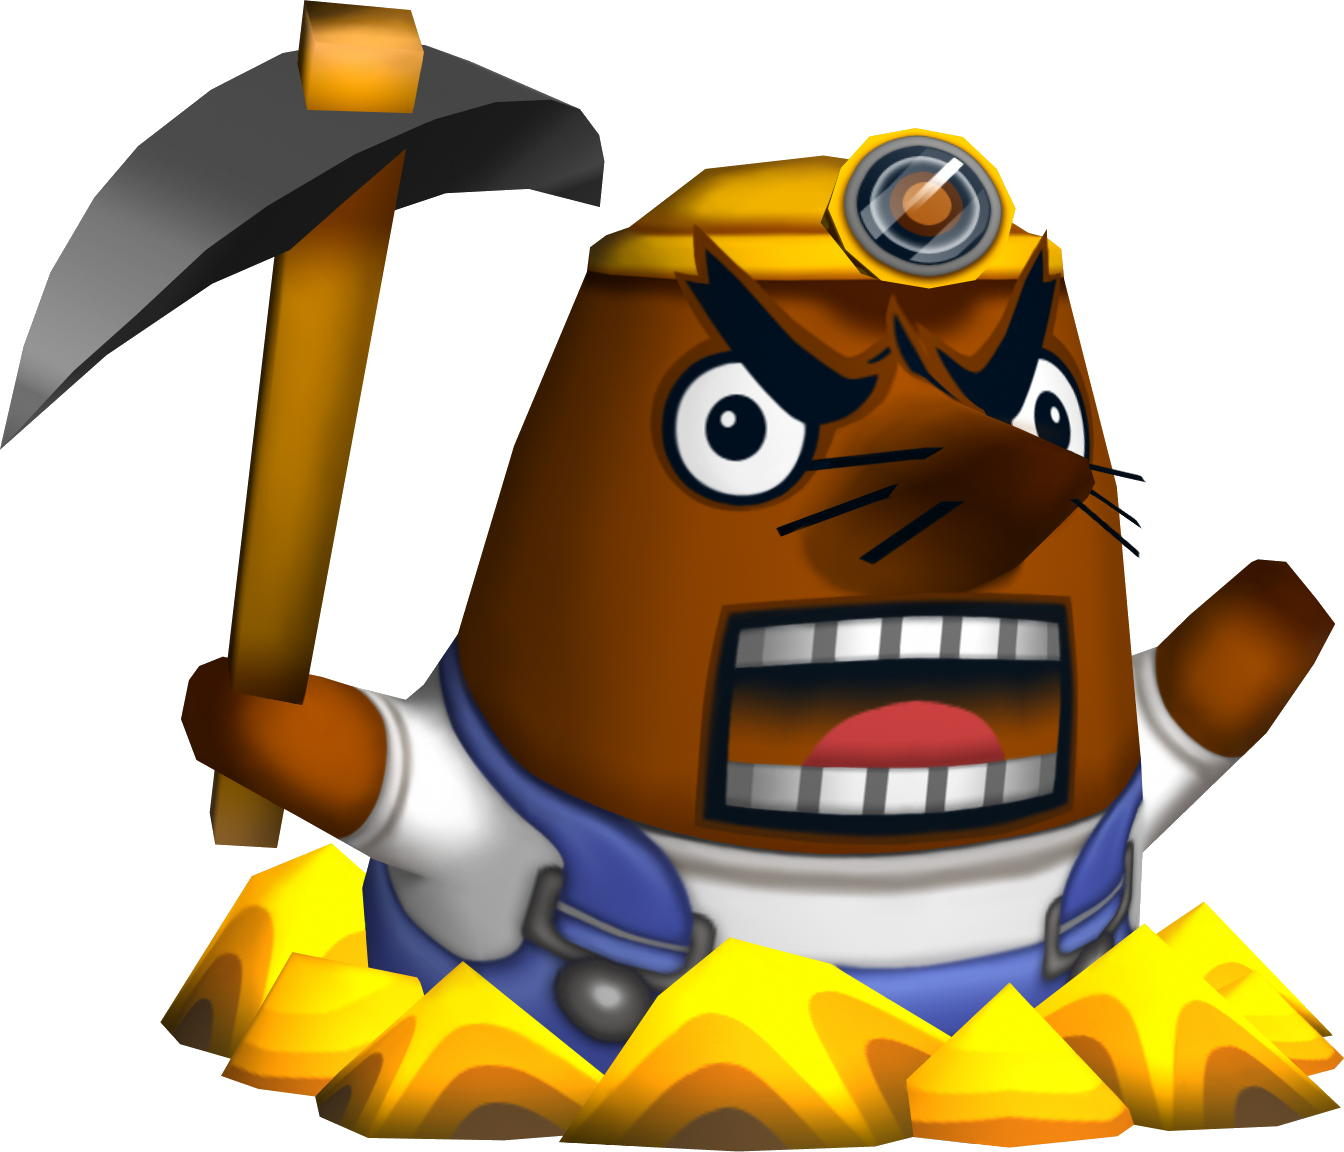 Mr Resetti, the angry mole of Animal Crossing, in a miner's hat, brandishing a pickaxe and making an angry face